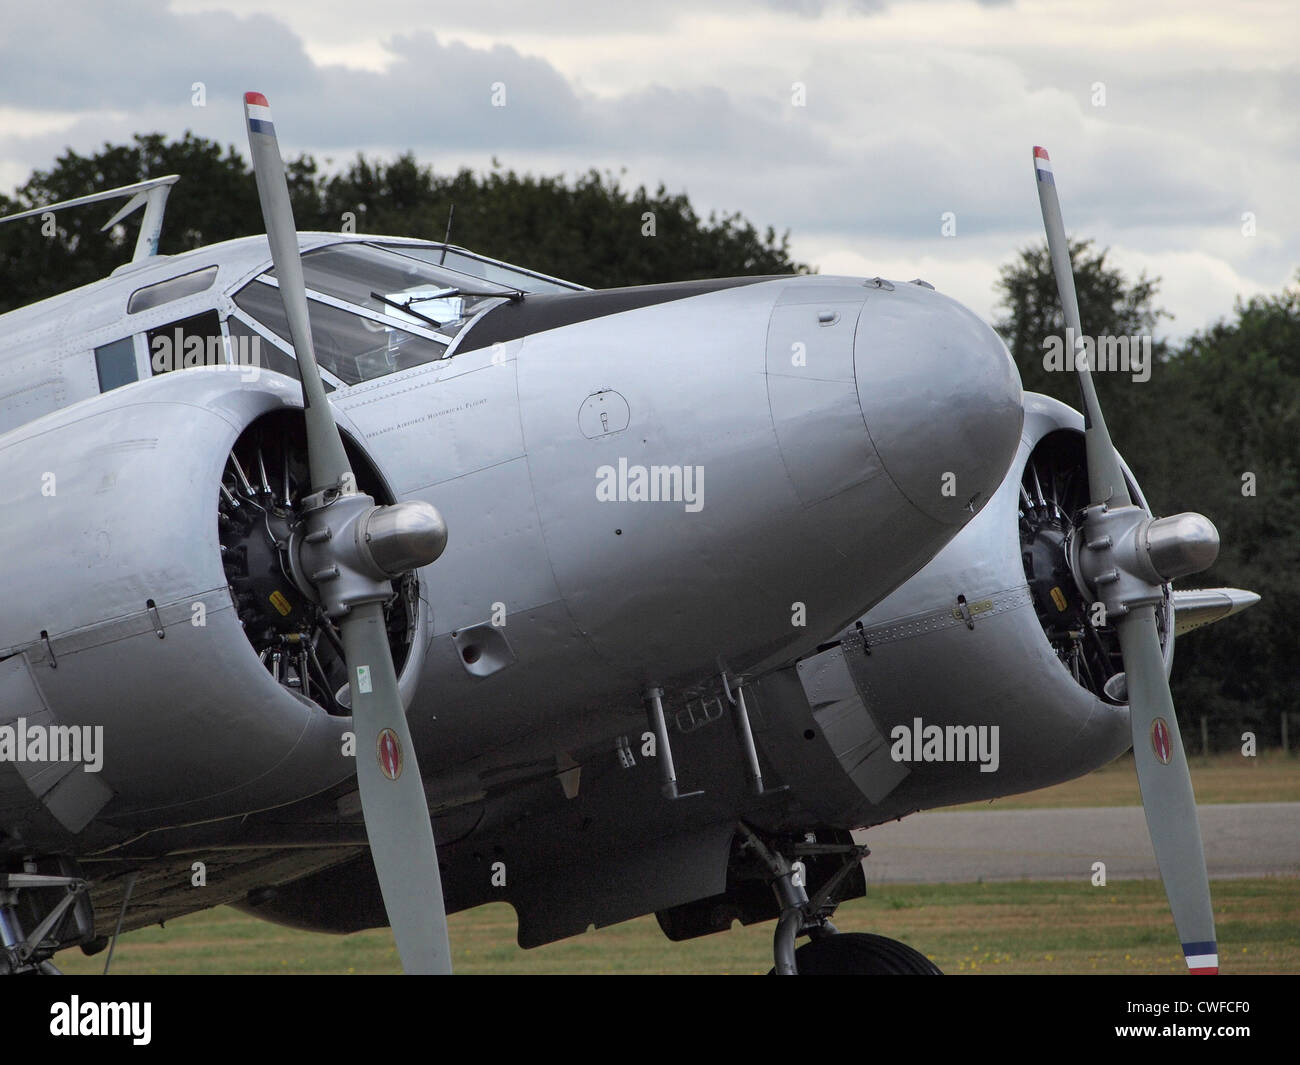 Vintage Beechcraft B18S twin engined aeroplane at Seppe airfield, the Netherlands - Stock Image